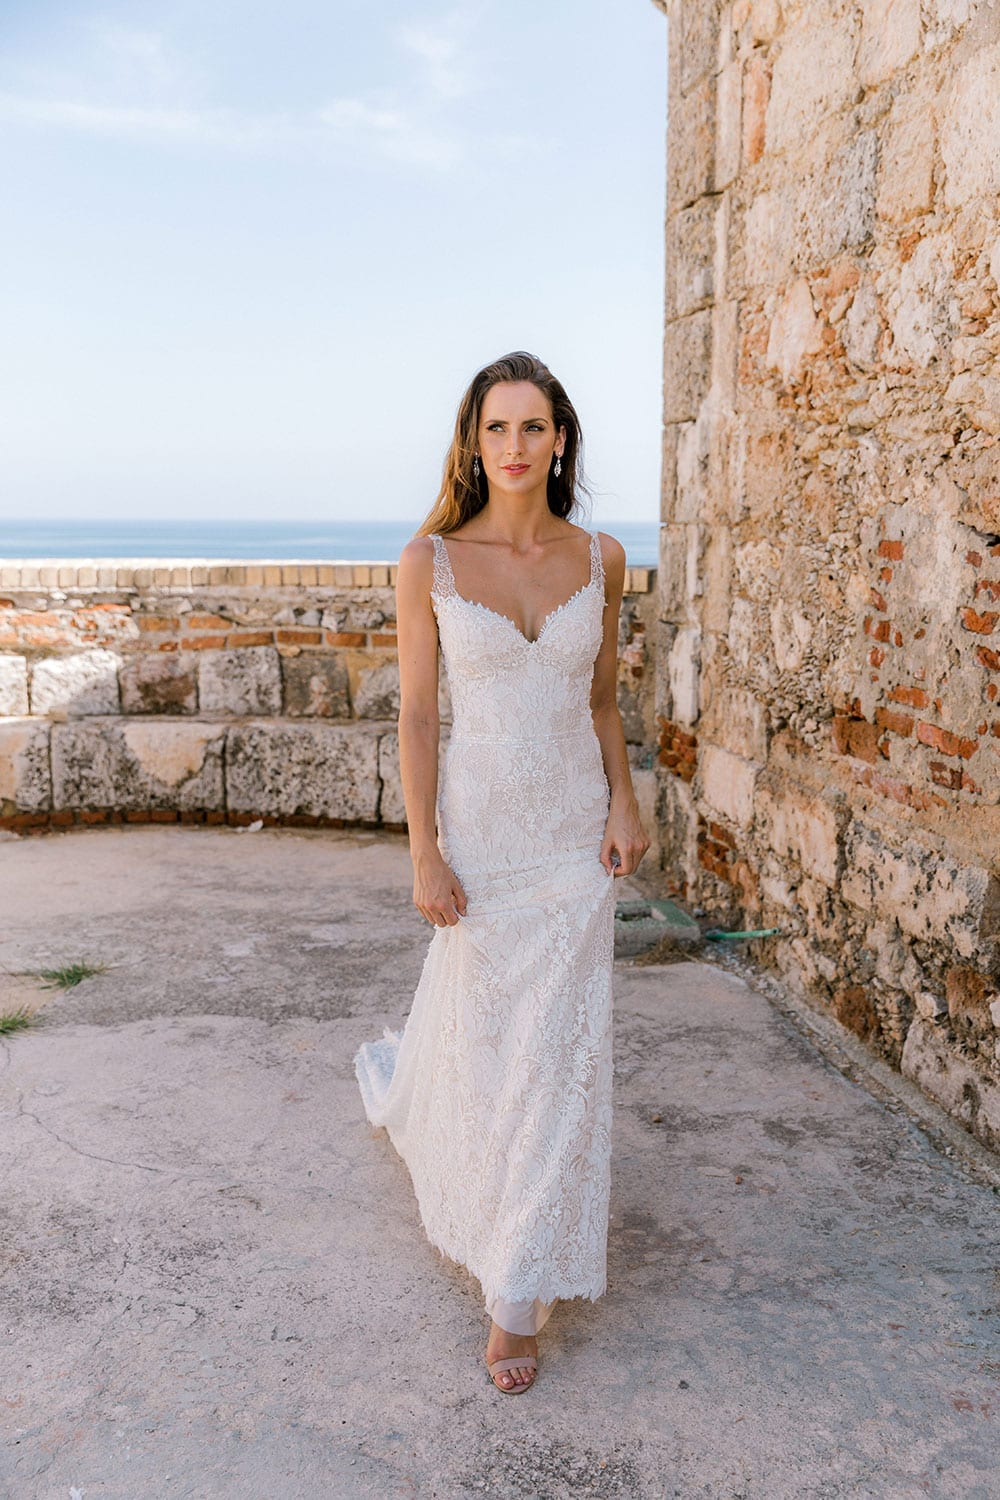 Model wearing Vinka Design Miriam Wedding Dress, a Beaded Lace Wedding Gown walking along old path in Cuba